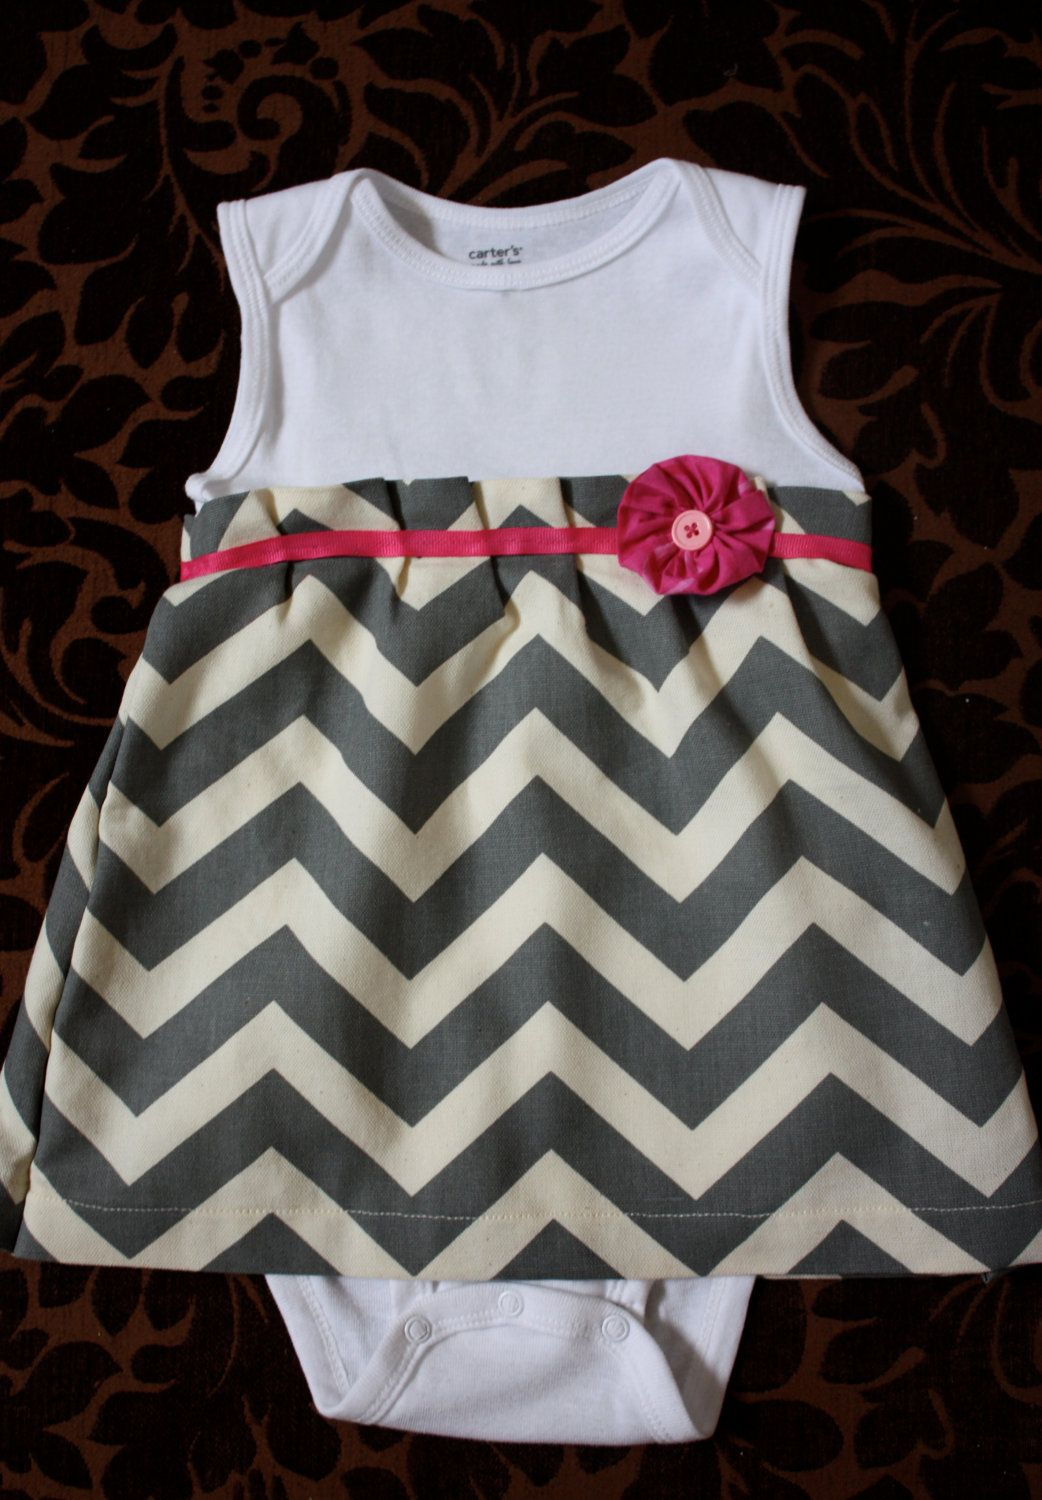 Chandal Bebe 18 Meses Onesie Dress Chevron Print Newborn 18 Month